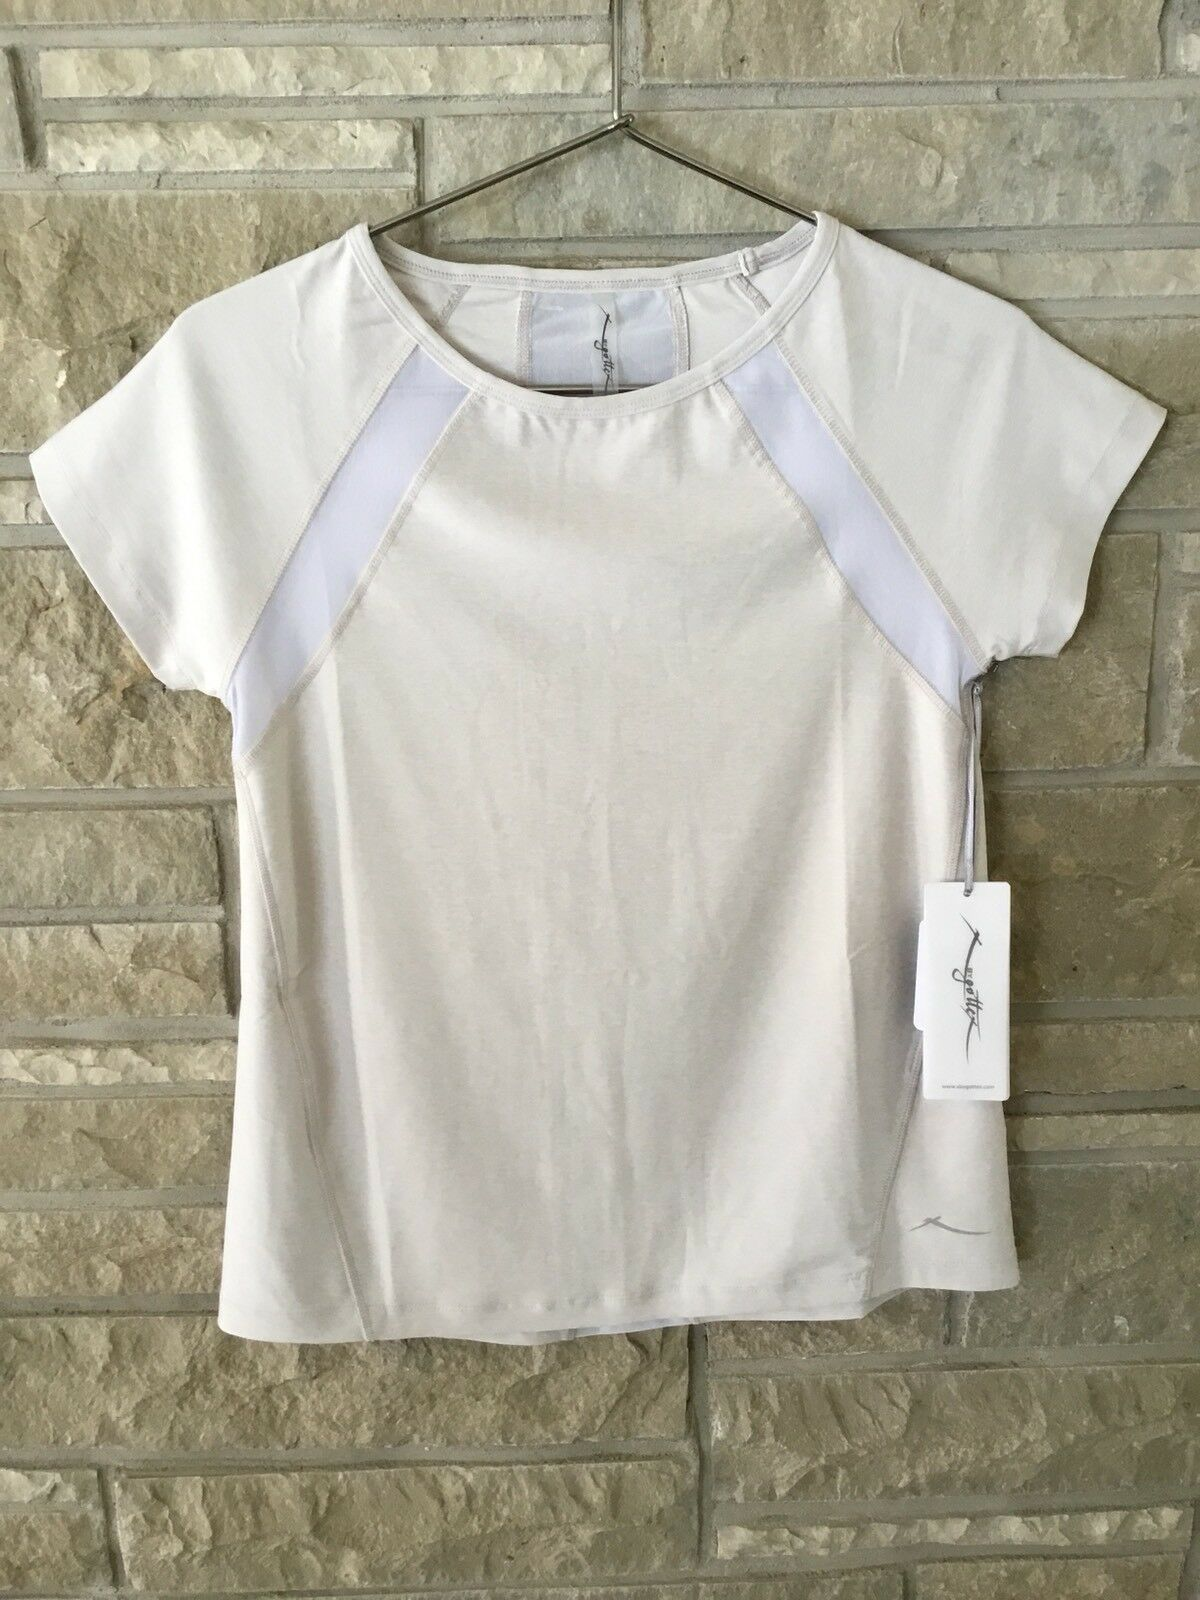 X BY GOTTEX WOMENS SHIRT CREAM & WHITE SIZE (S) MSRP BRAND NEW WITH TAGS